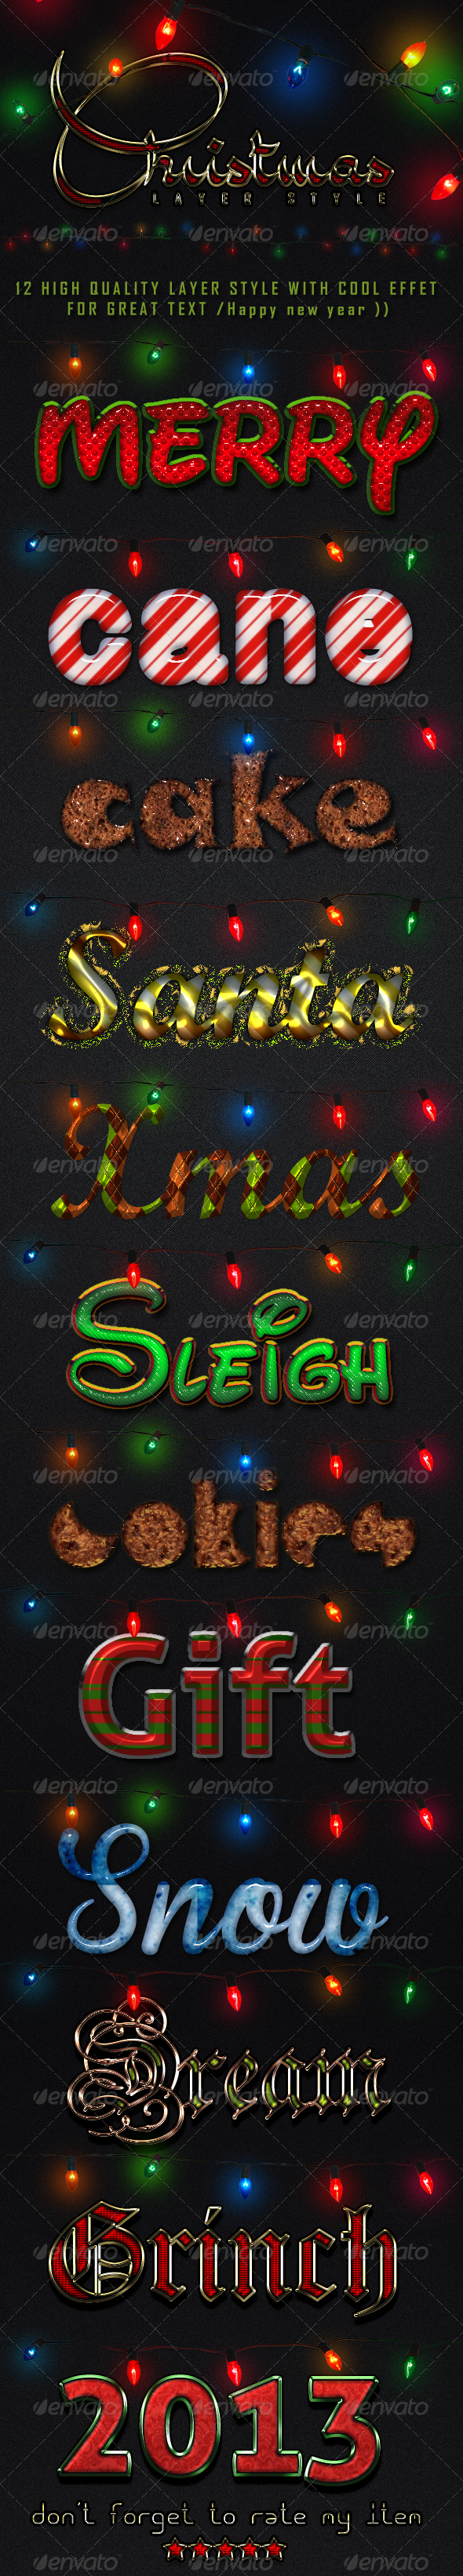 Christmas [Styles] - Text Effects Styles